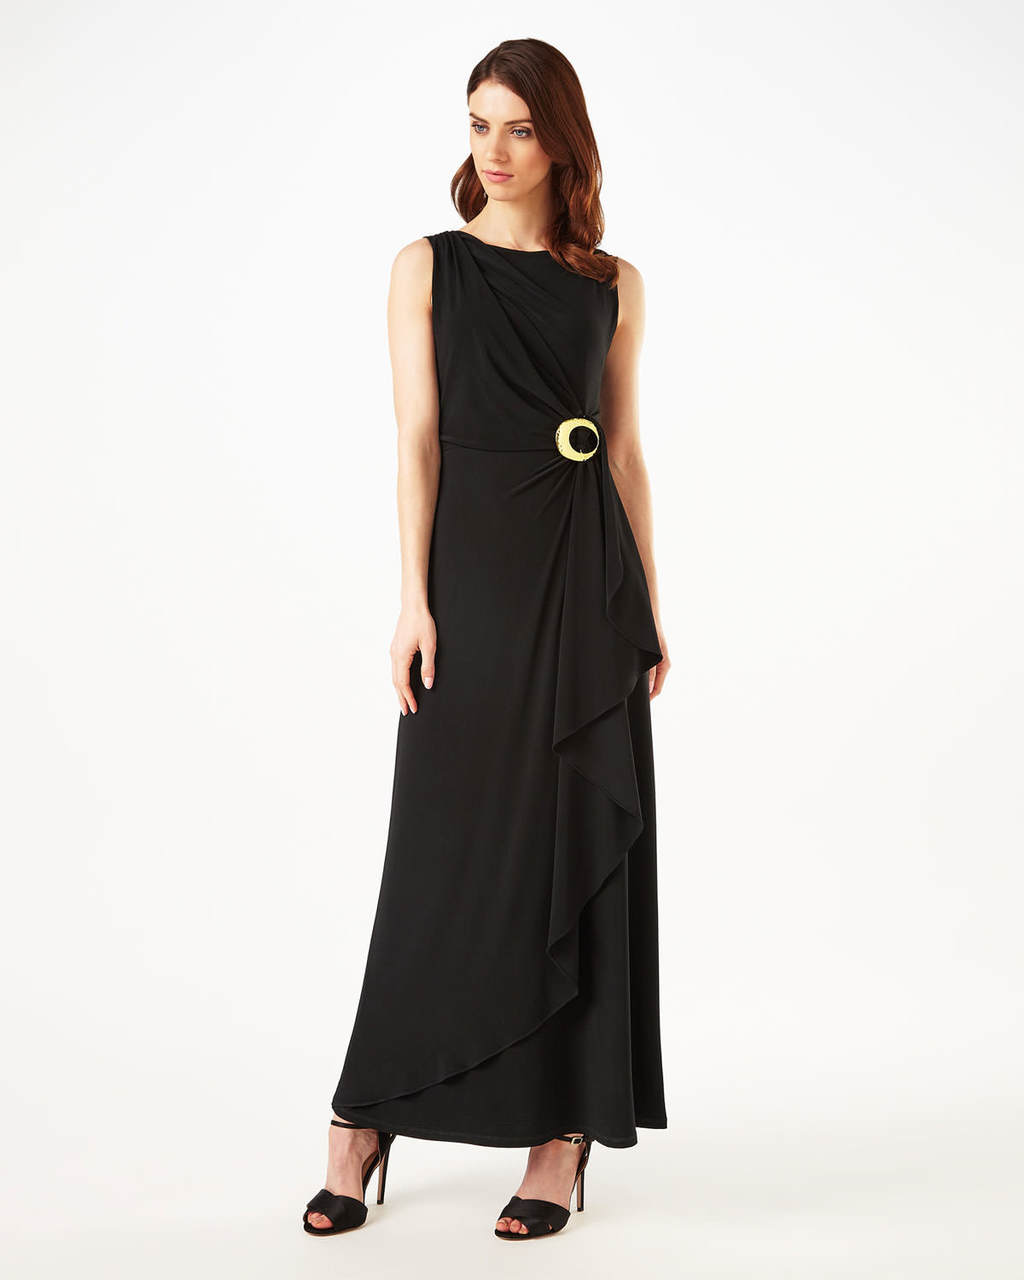 Kamini Maxi Dress - pattern: plain; sleeve style: sleeveless; style: maxi dress; length: ankle length; waist detail: belted waist/tie at waist/drawstring; predominant colour: black; occasions: evening; fit: body skimming; fibres: polyester/polyamide - stretch; neckline: crew; sleeve length: sleeveless; pattern type: fabric; texture group: jersey - stretchy/drapey; season: s/s 2016; wardrobe: event